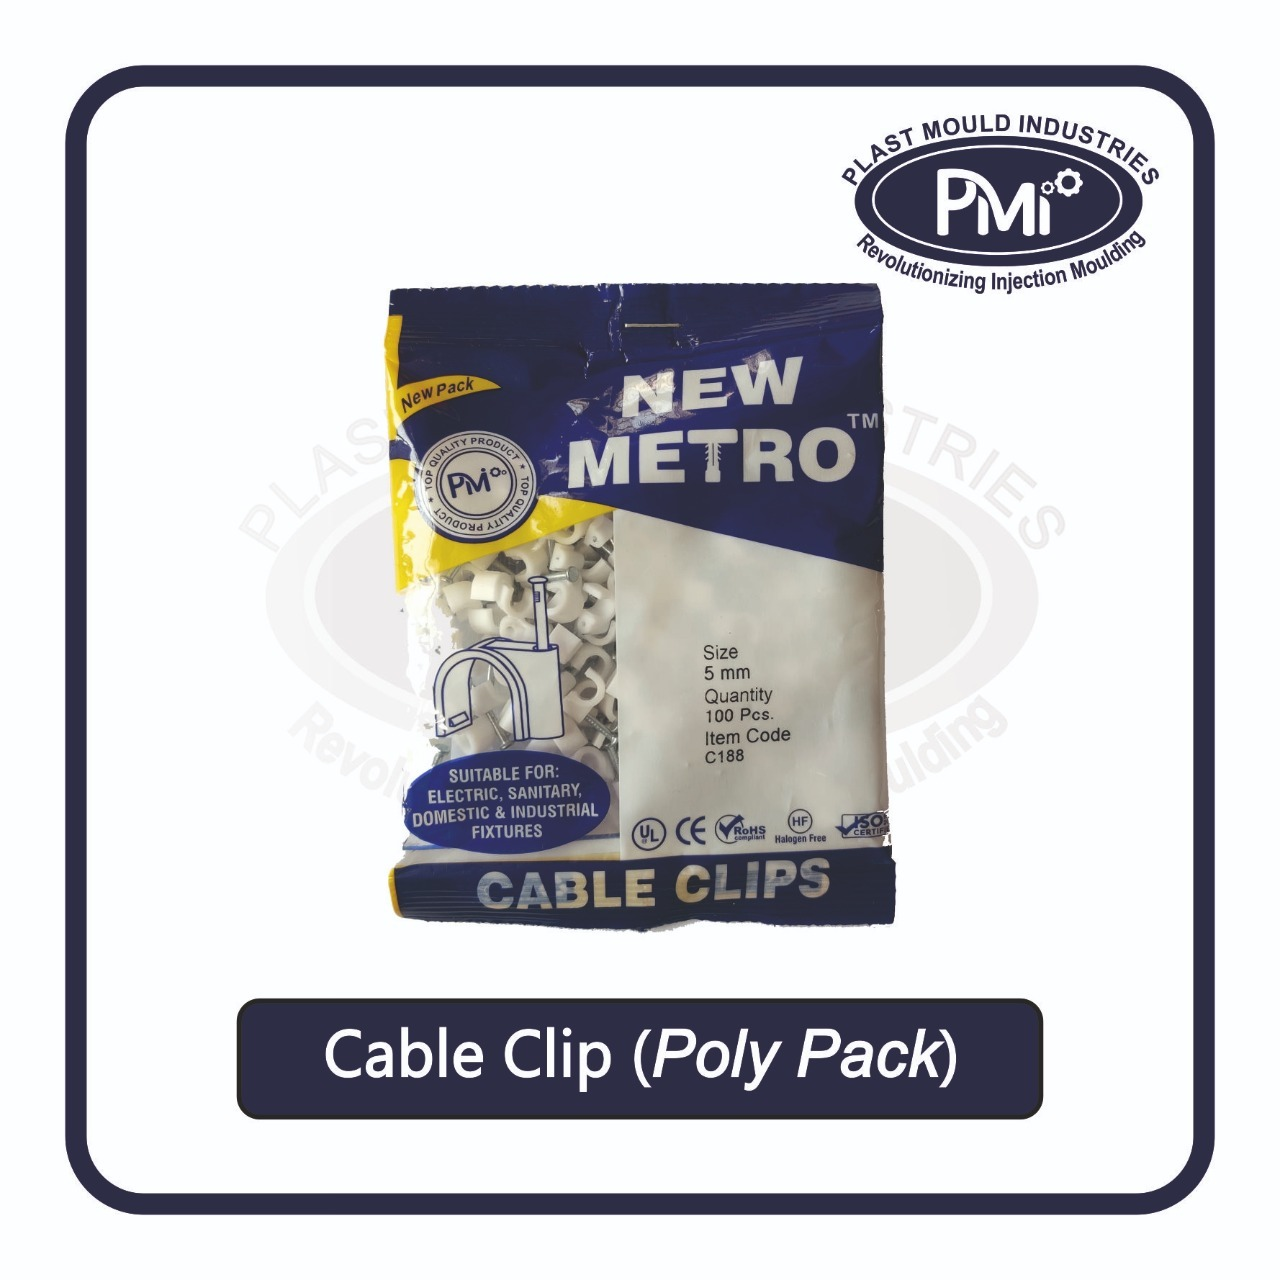 8mm Cable Clip